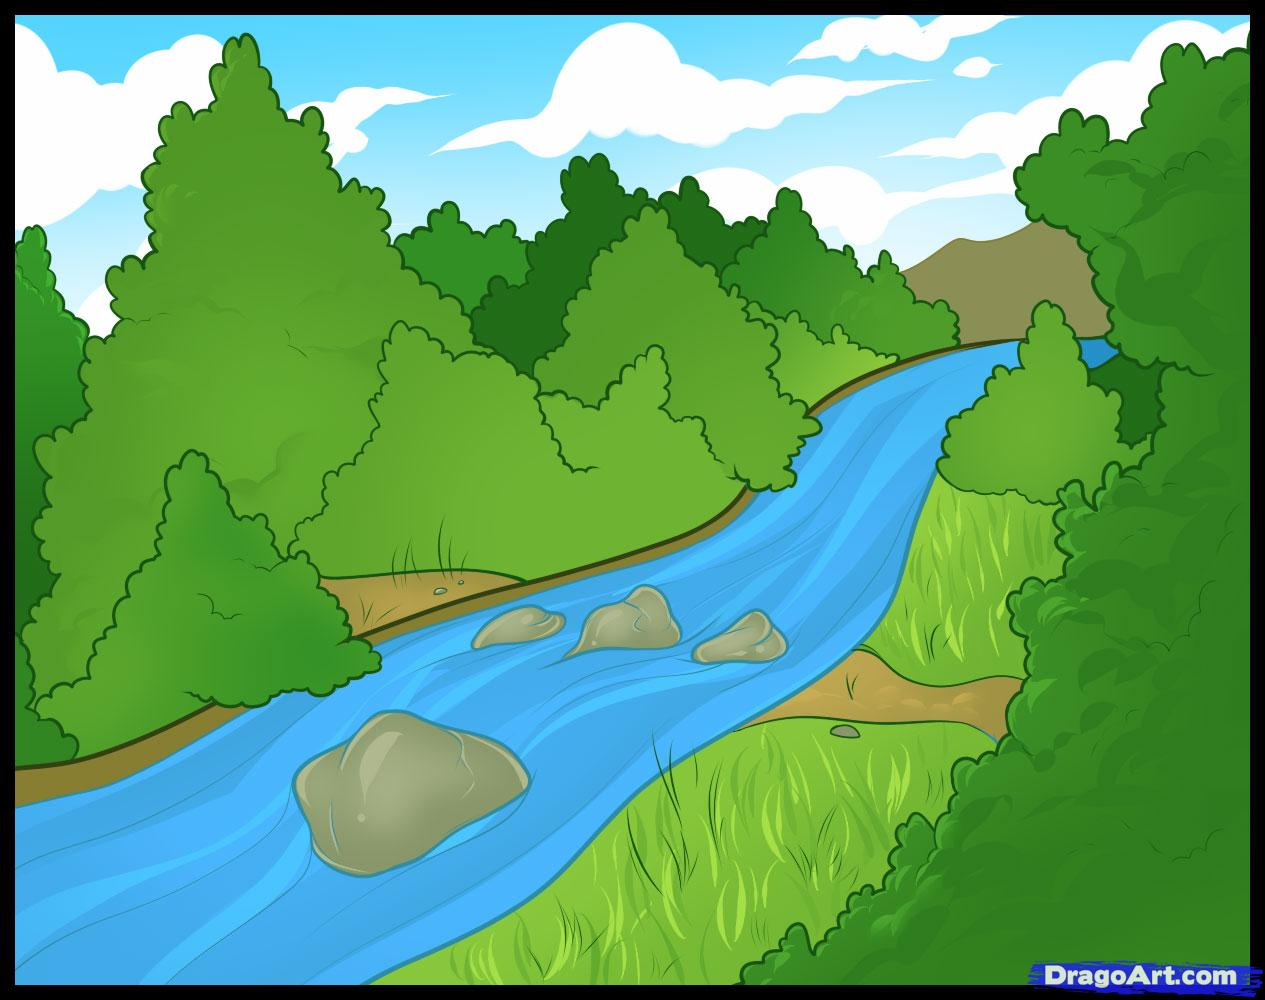 Drawn river To Landmarks a to &